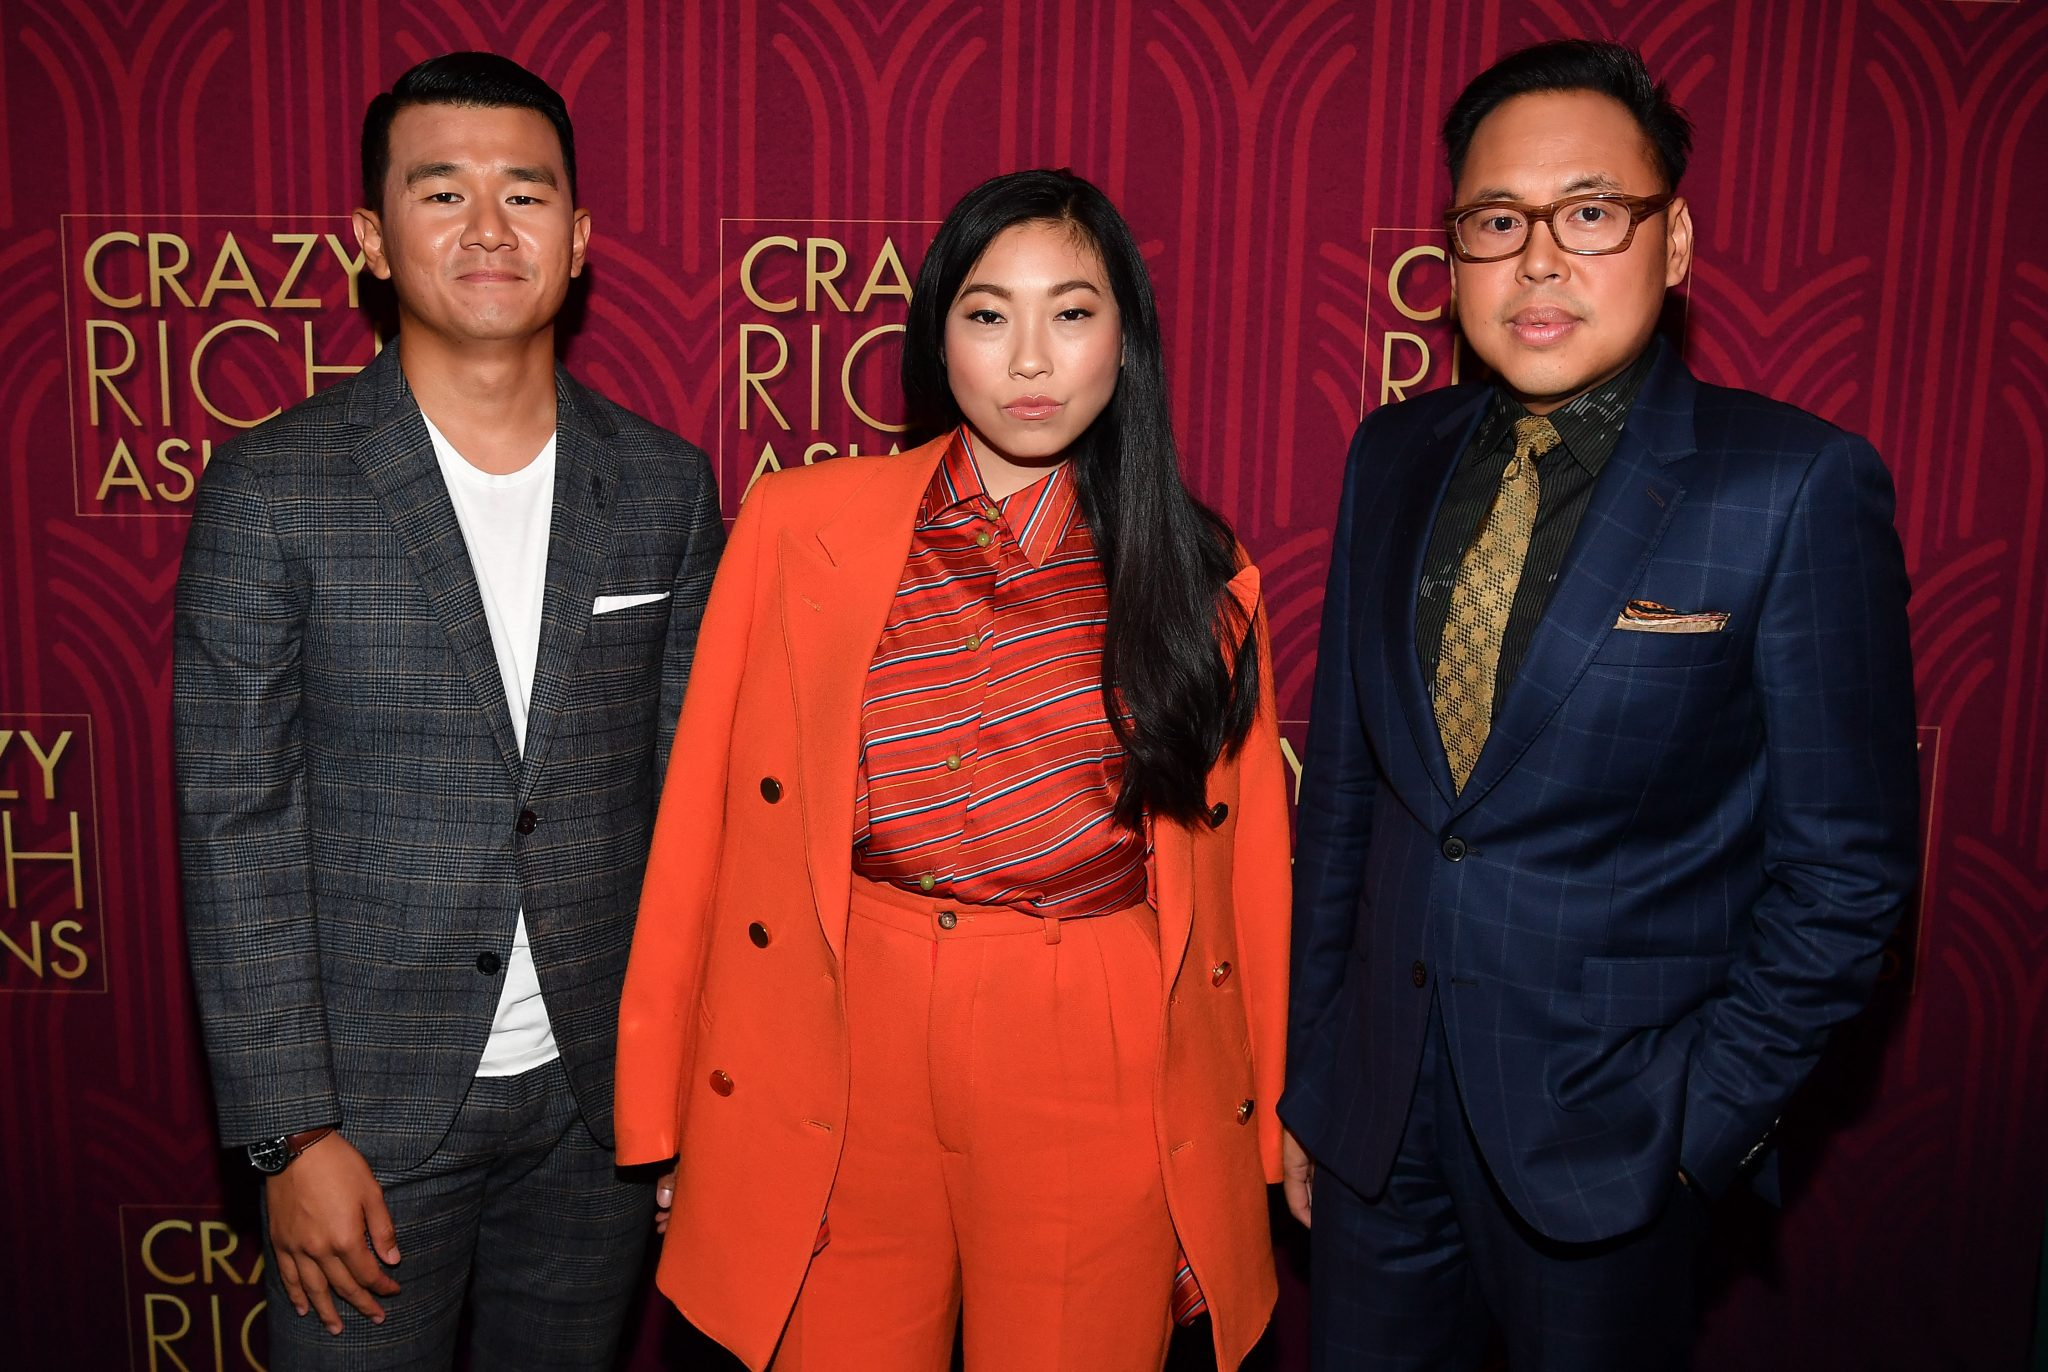 Crazy Rich Asians Private Red Carpet Screening And After Party In Atlanta